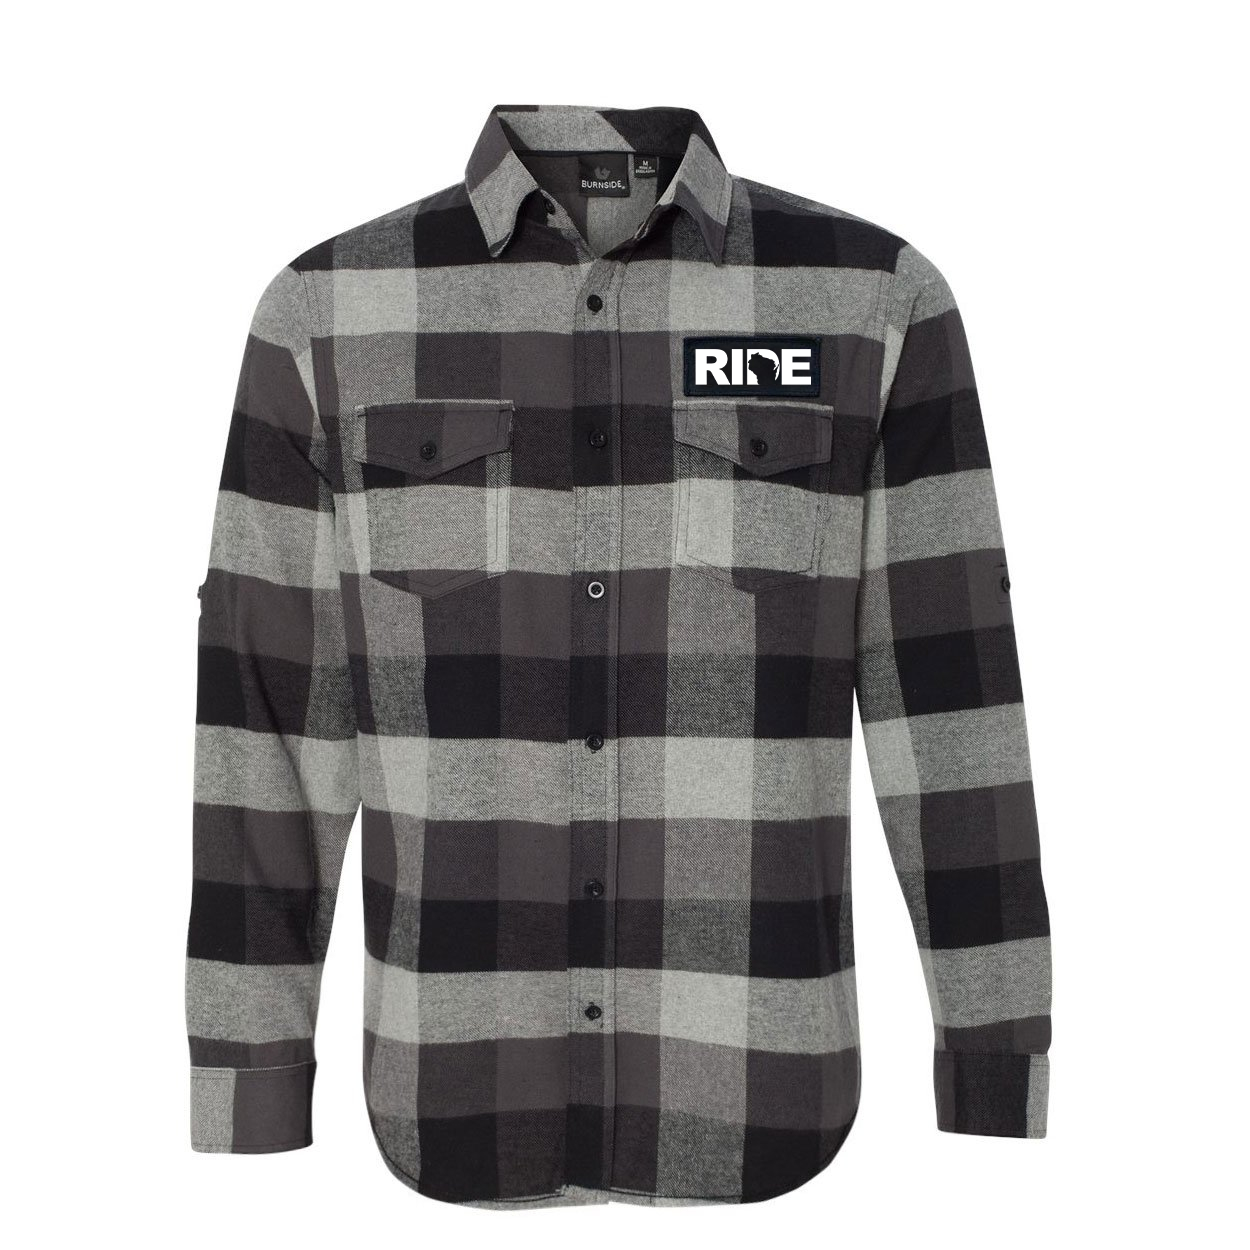 Ride Wisconsin Classic Unisex Long Sleeve Woven Patch Flannel Shirt Black/Gray (White Logo)